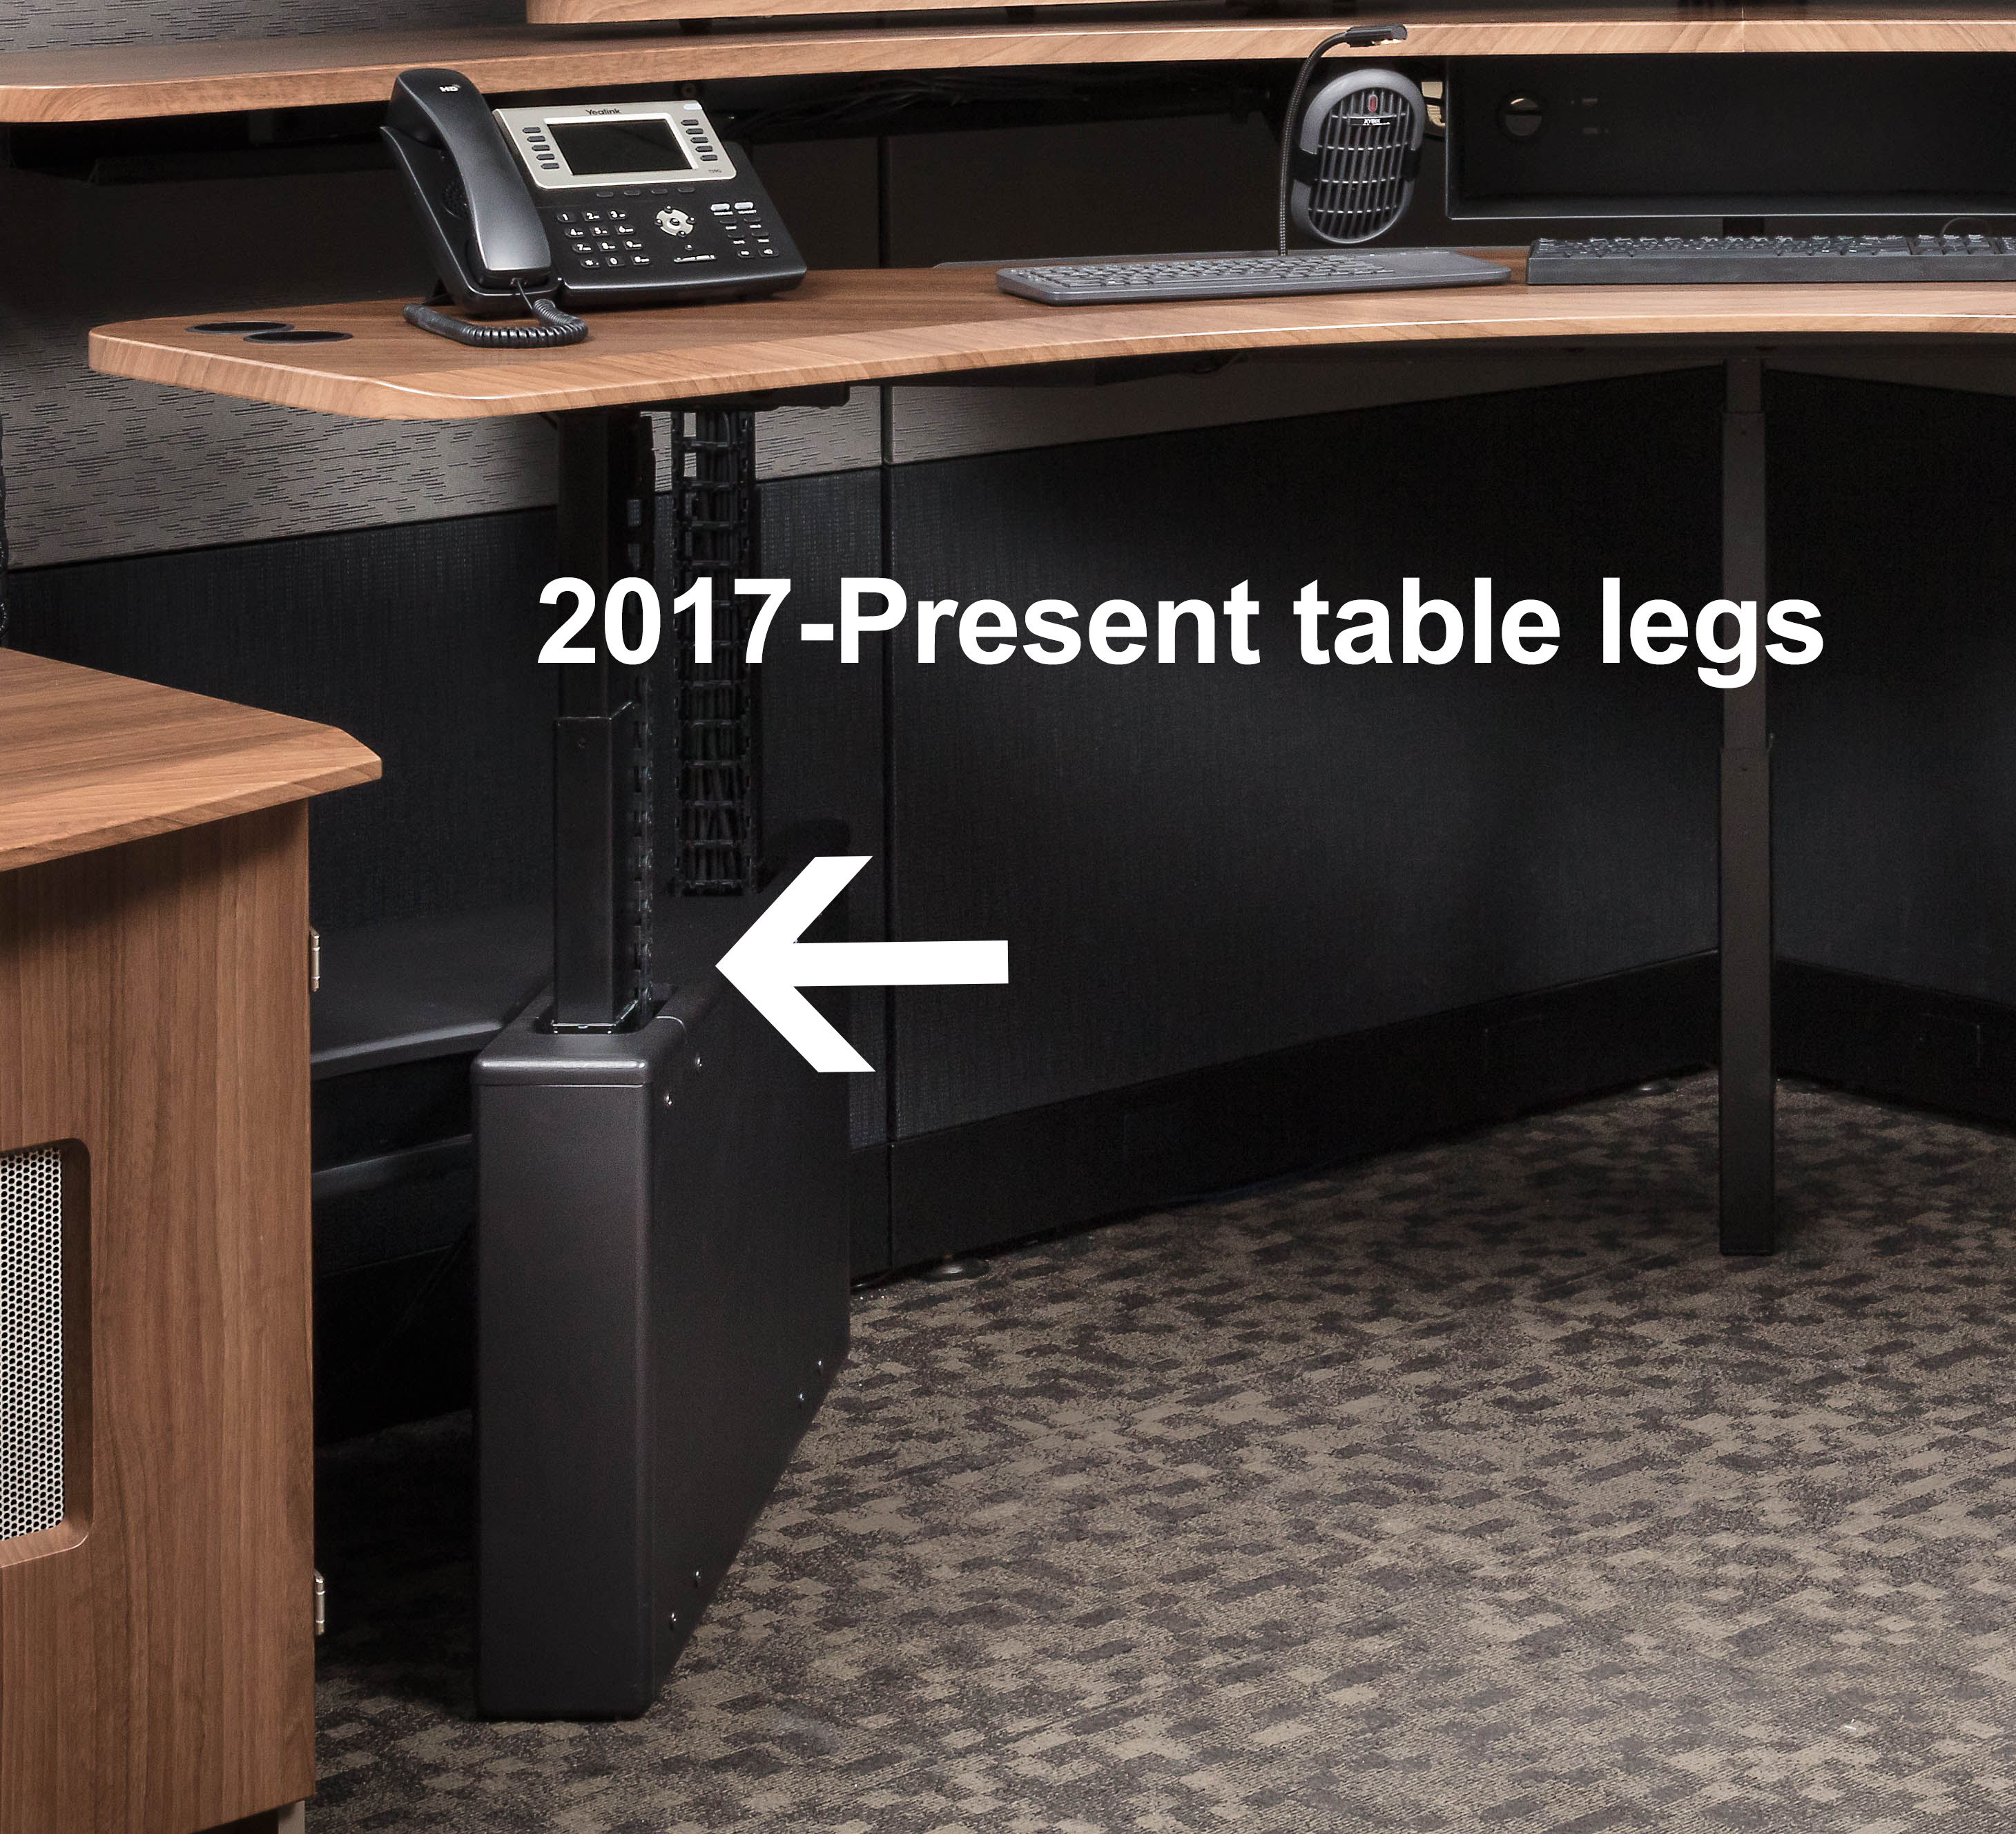 Troubleshooting Table: Troubleshooting